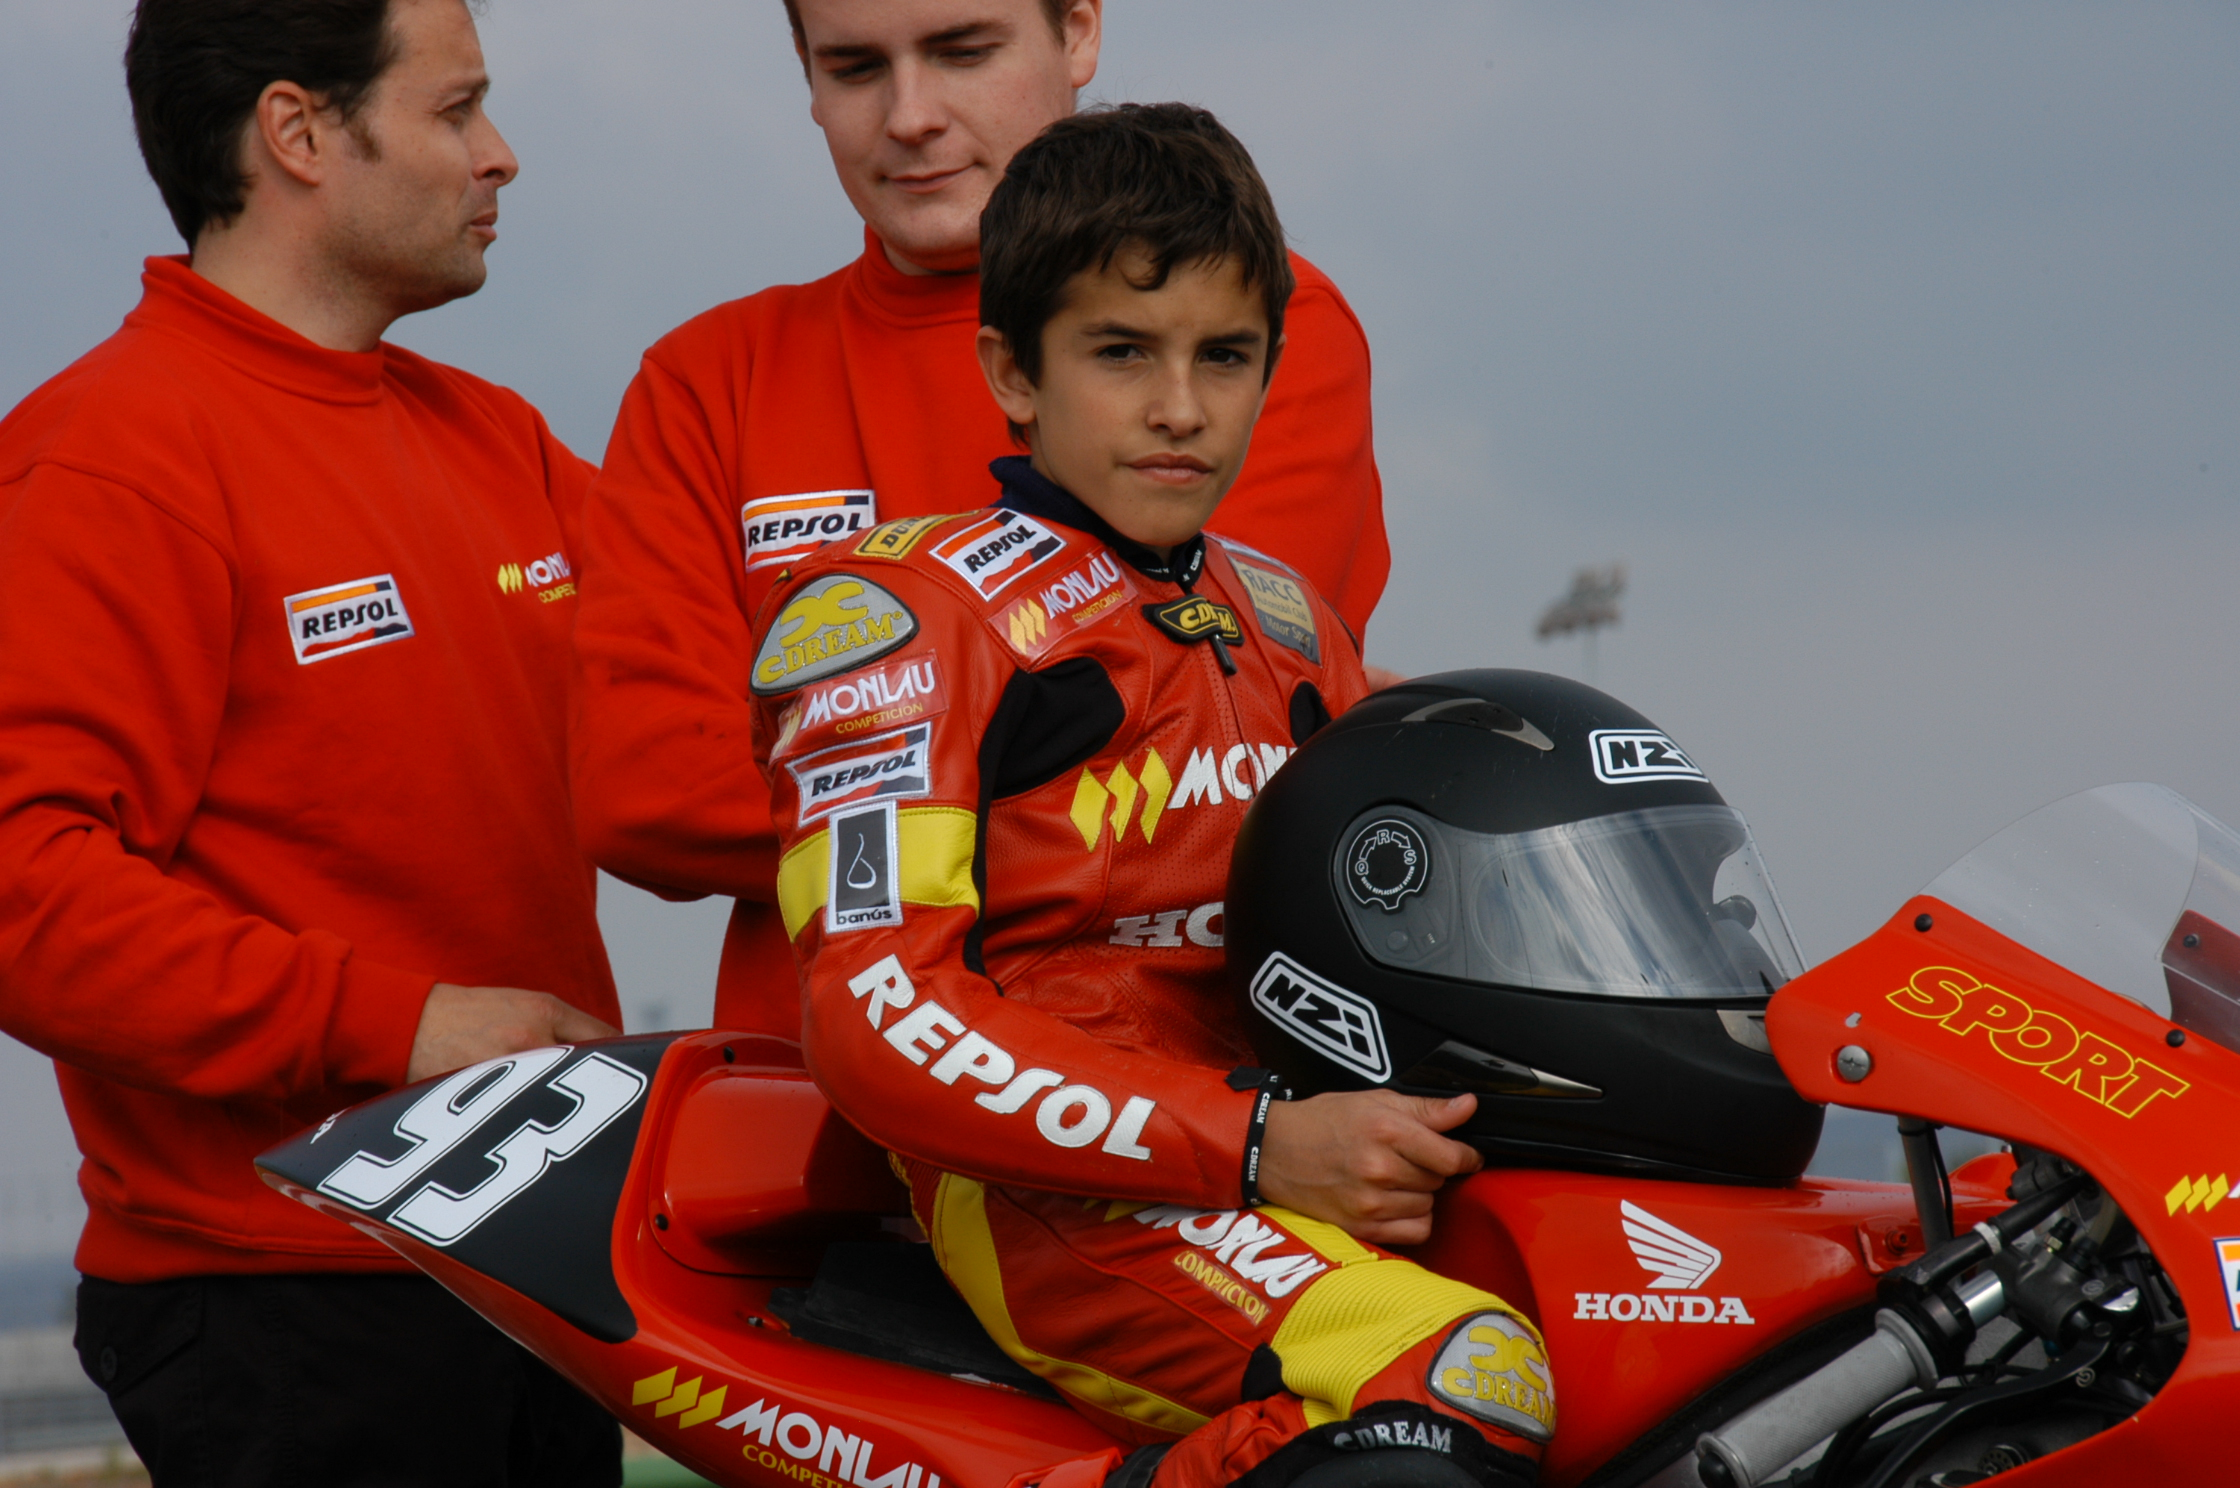 2014 World Champion – Marc Marquez - MotoGP